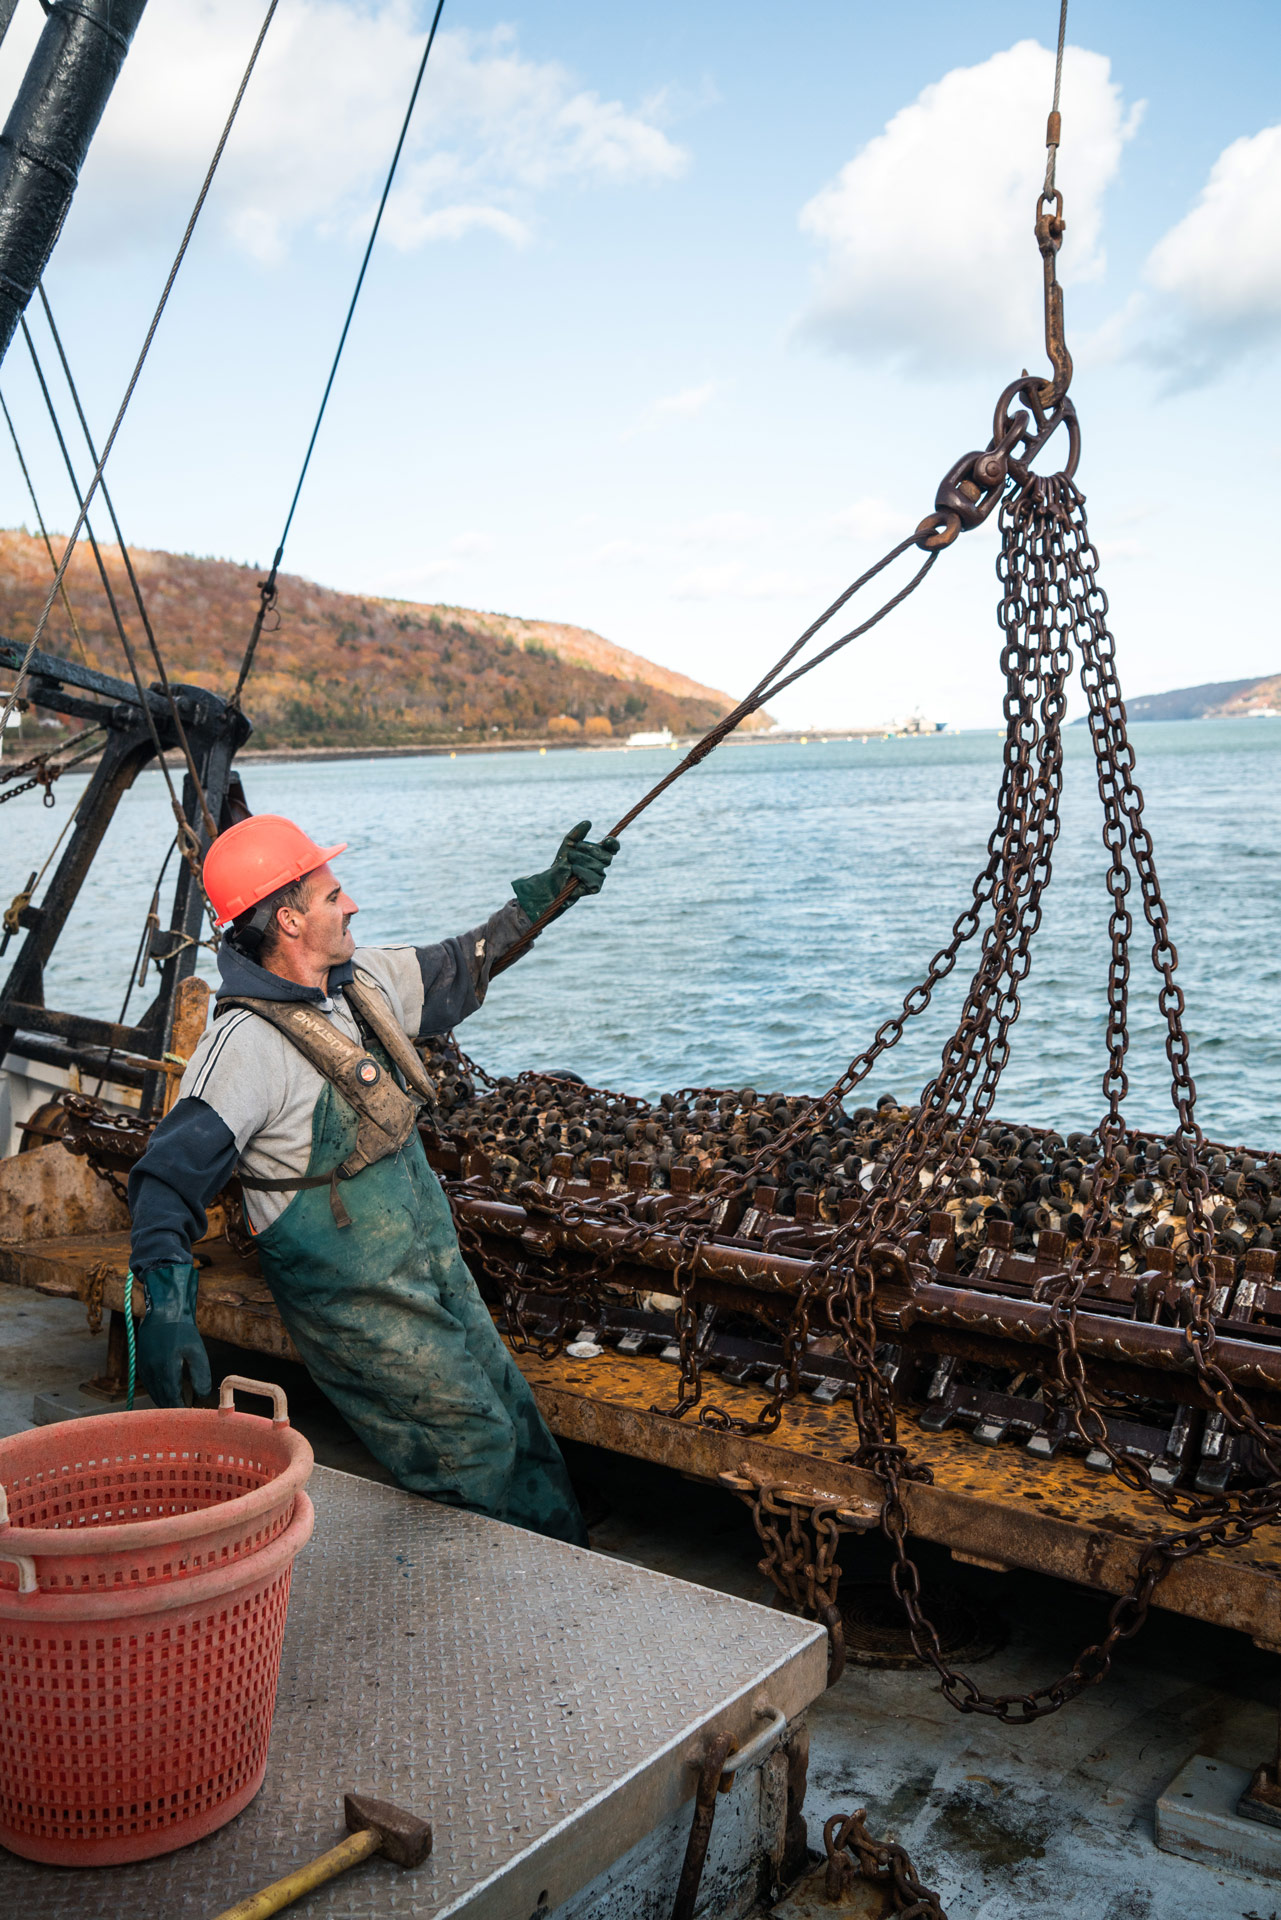 fisherman wearing red helmet stirring the fishing platform by Bruno Florin for Ricardo Magazine in Bay of Fundy